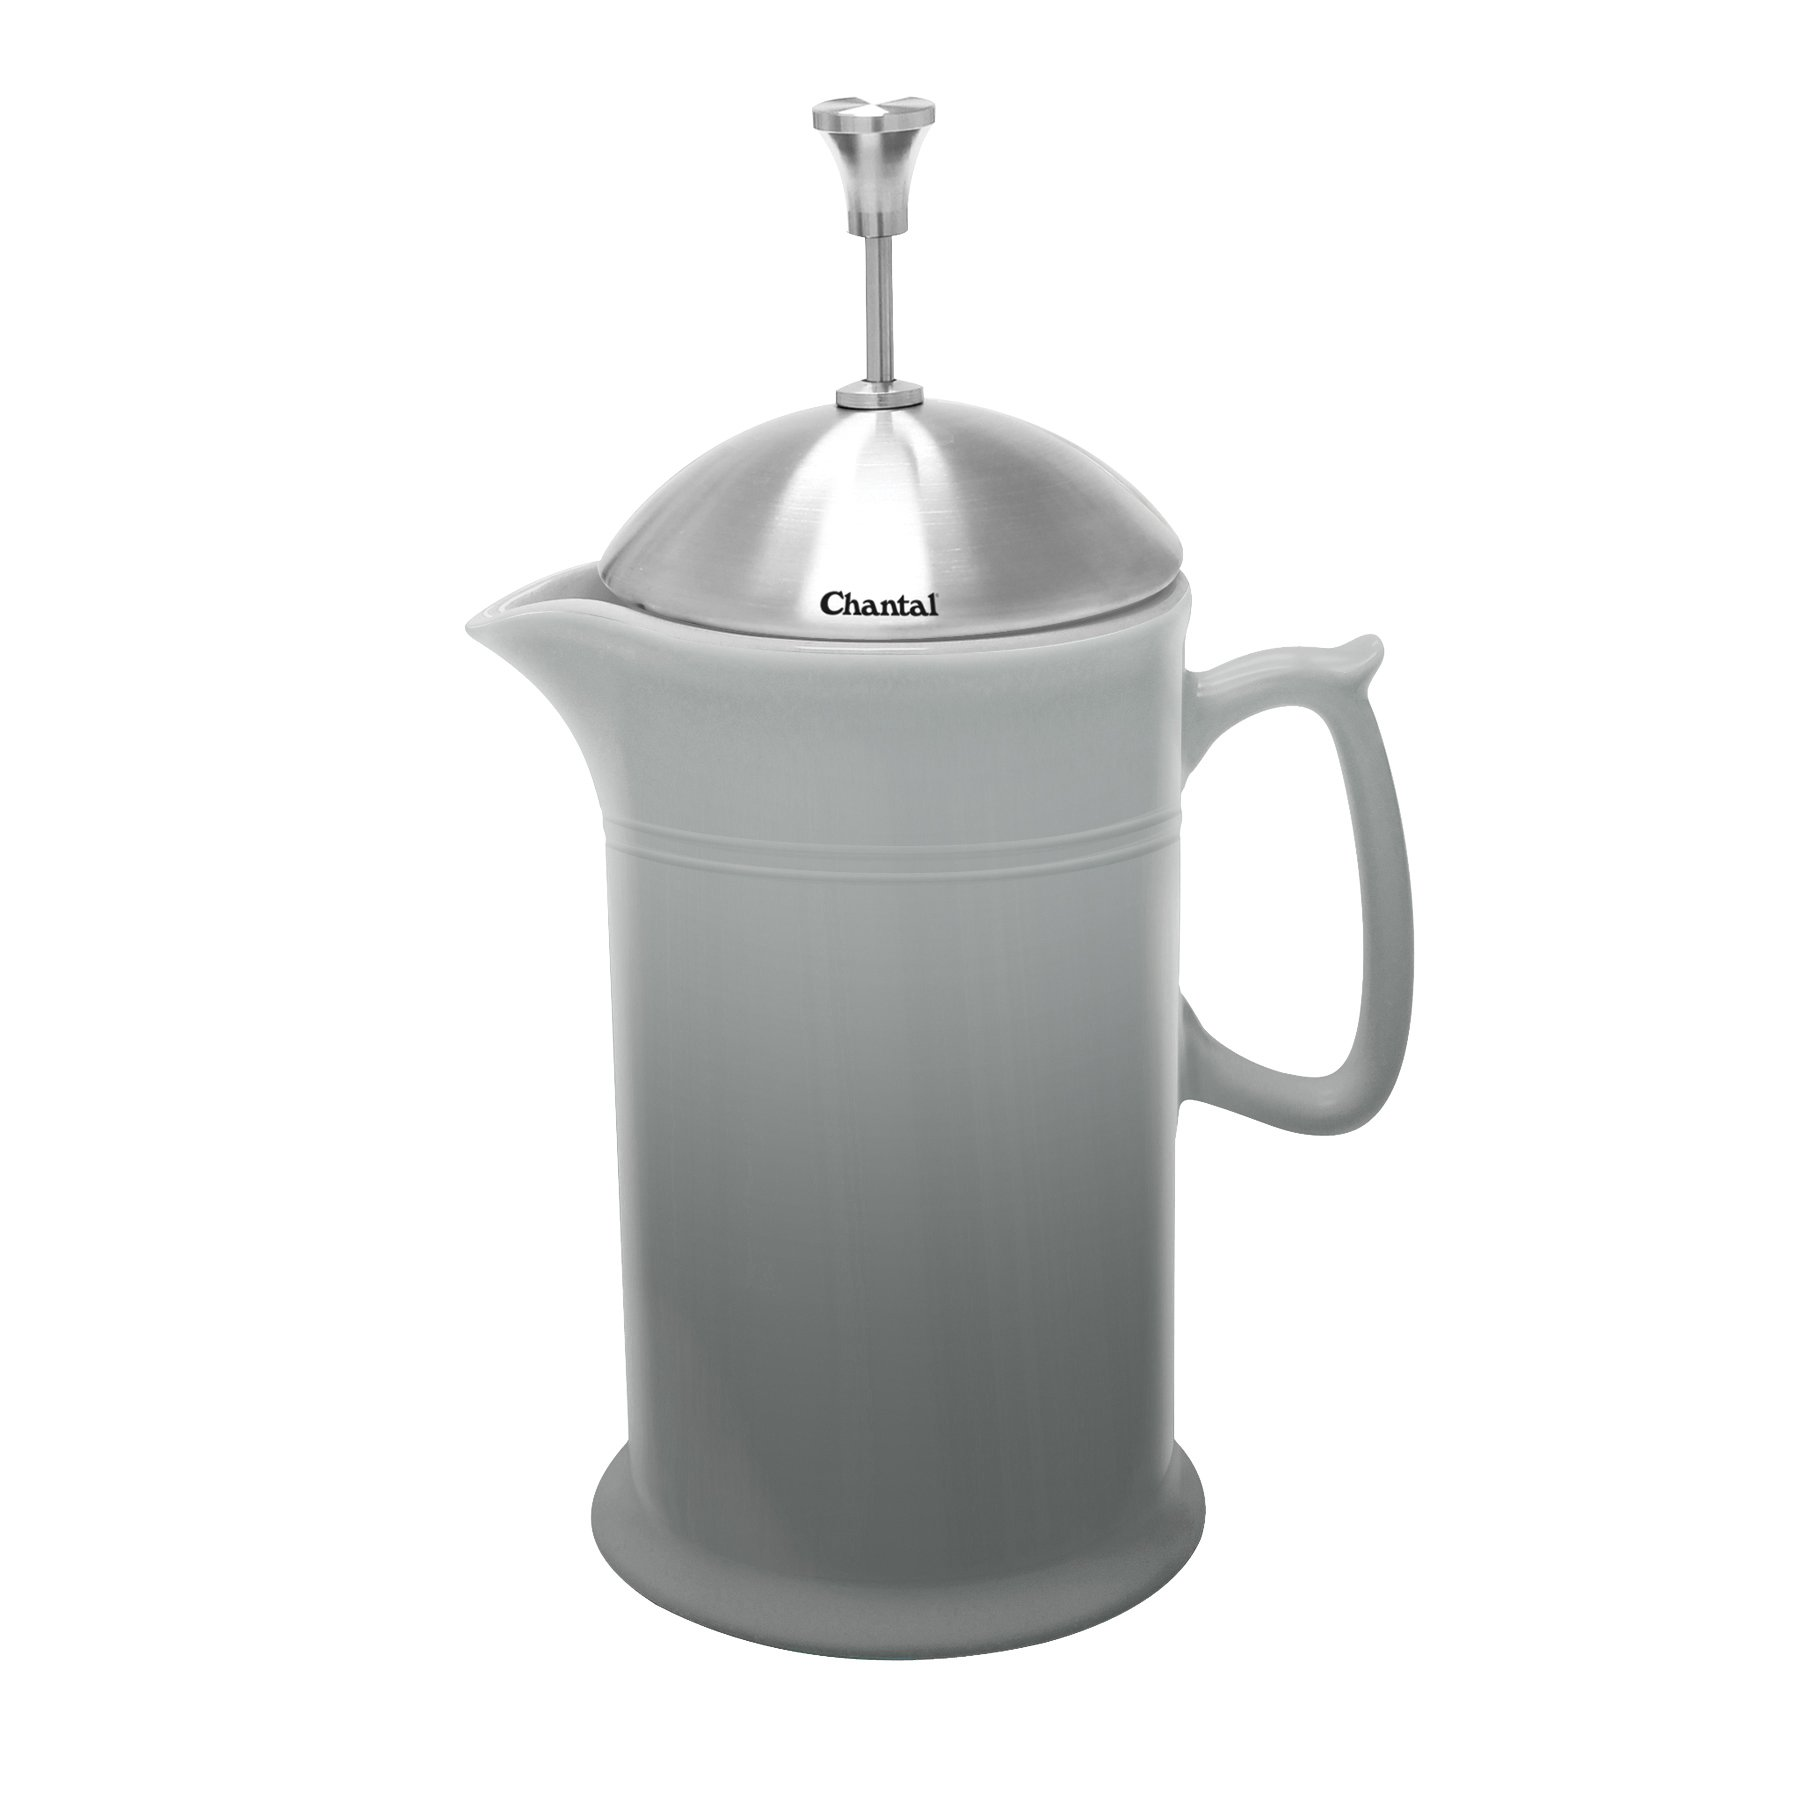 Chantal 92-FP28 FG Ceramic French Press with Stainless Steel Plunger/Lid, Fade Grey by Chantal